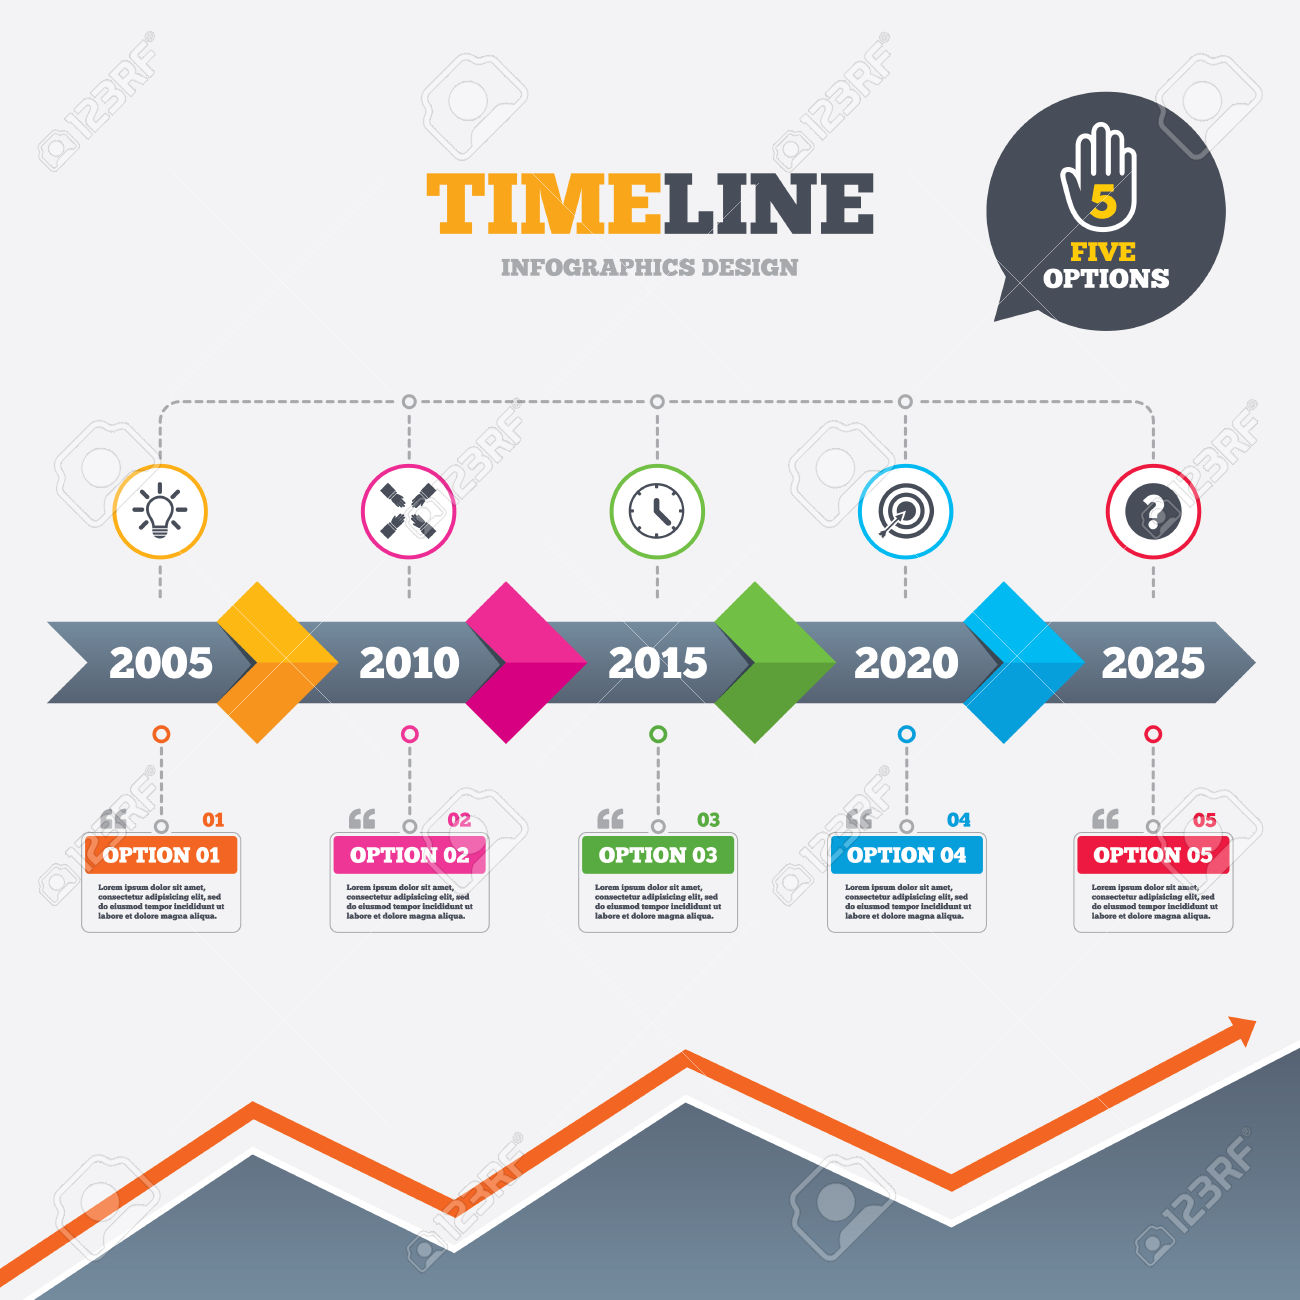 Growth arrow clipart clock banner free download Timeline Infographic With Arrows. Lamp Idea And Clock Time Icons ... banner free download